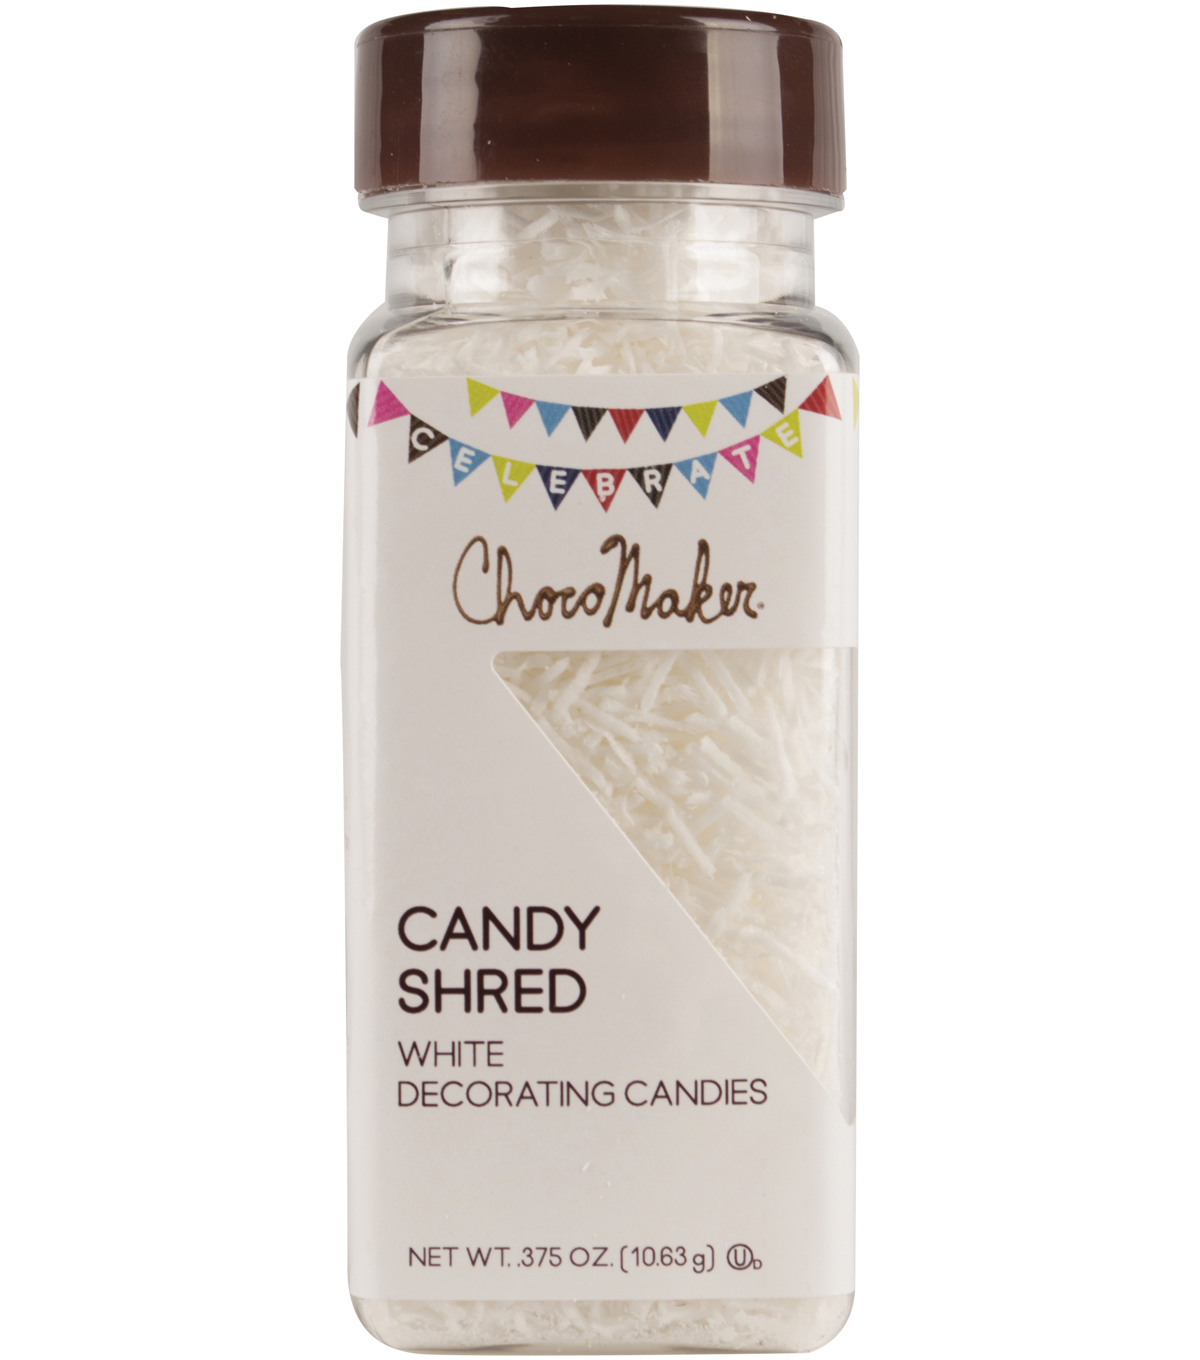 ChocoMaker Candy Shred .375oz-White